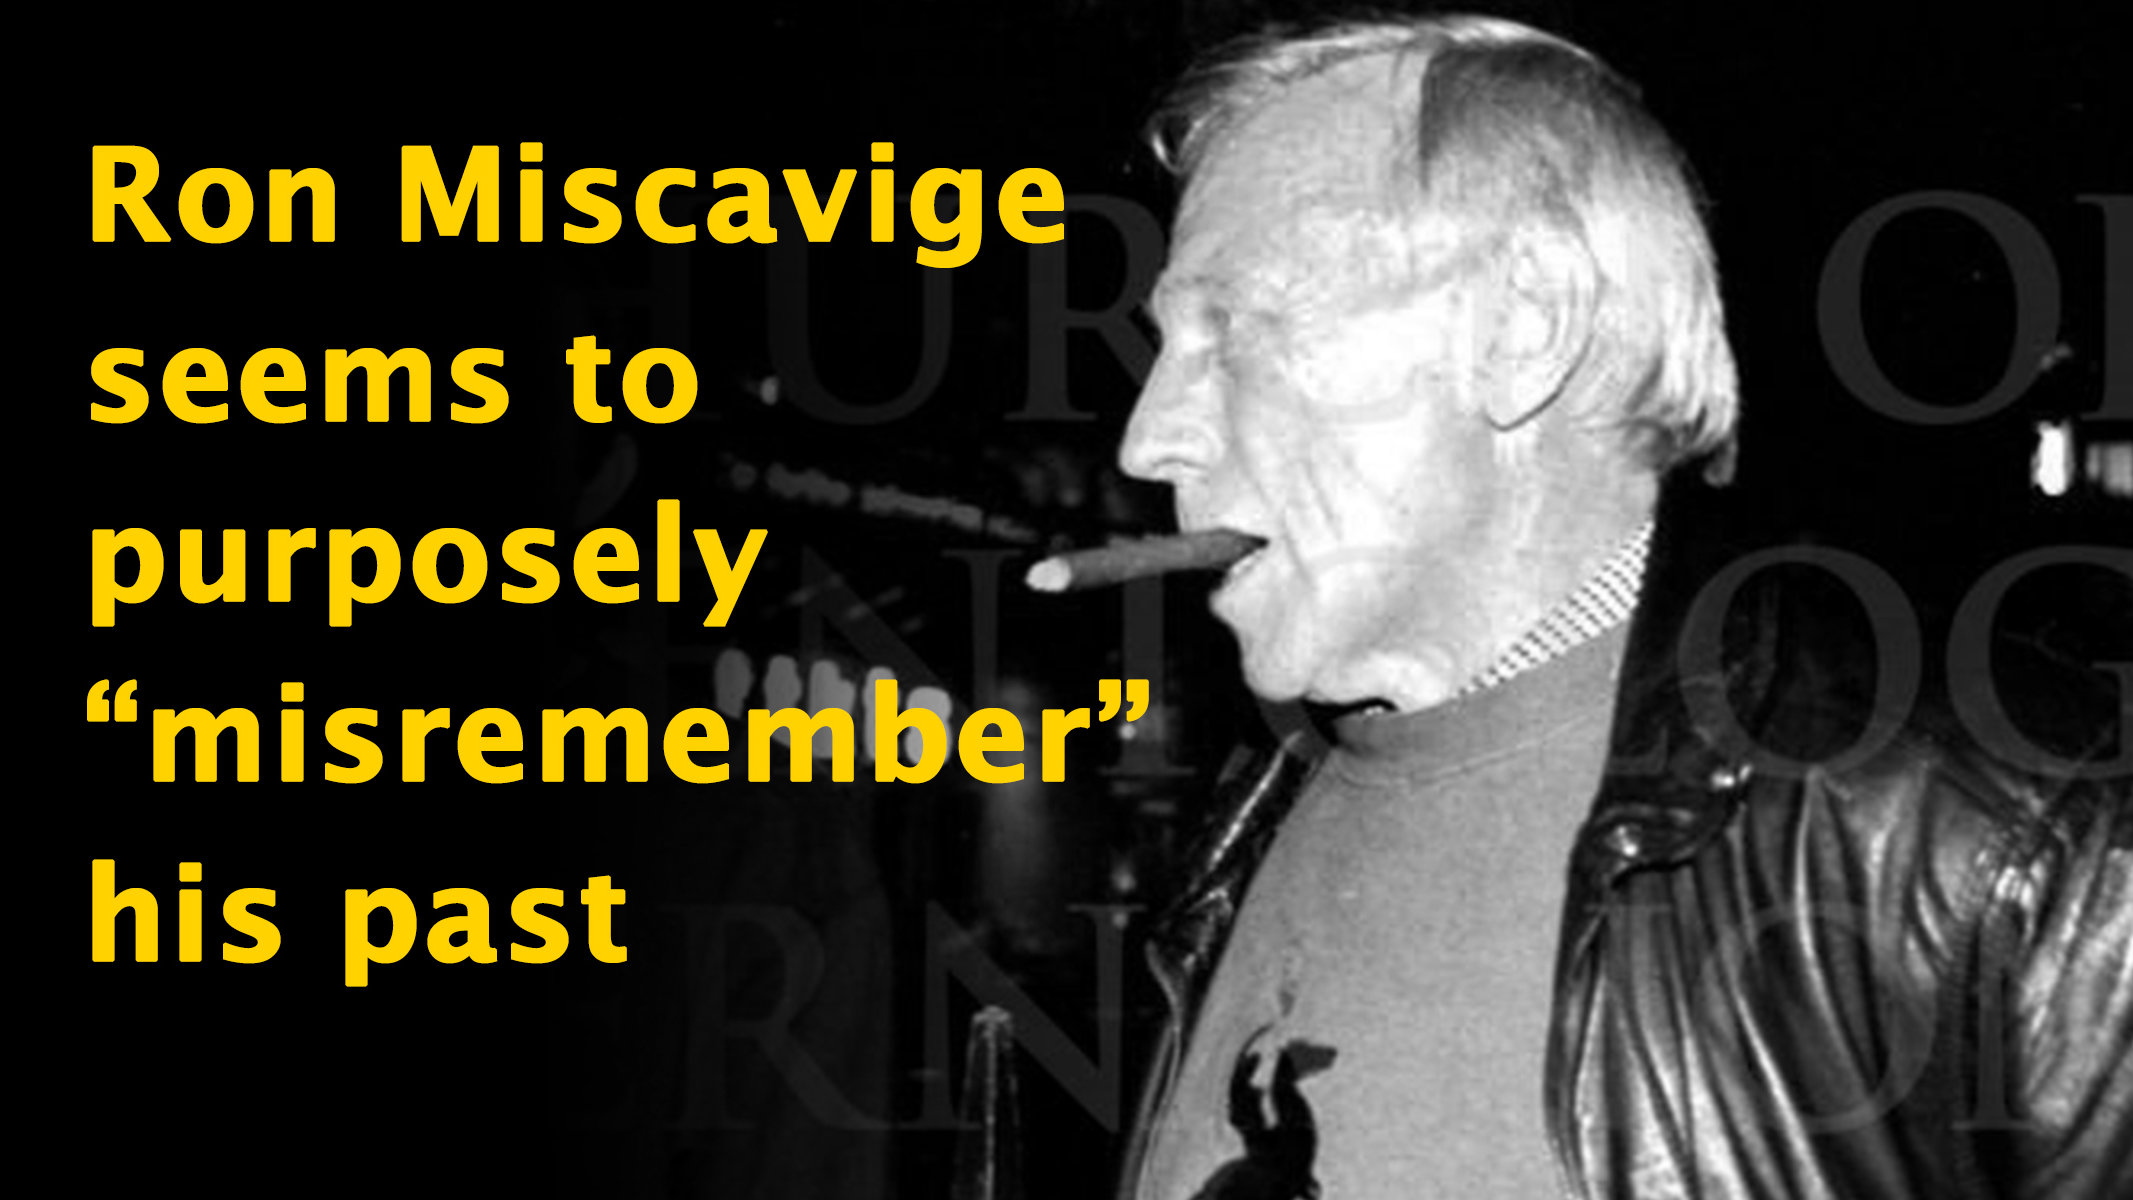 Read: Ron Miscavige: The Life He Had